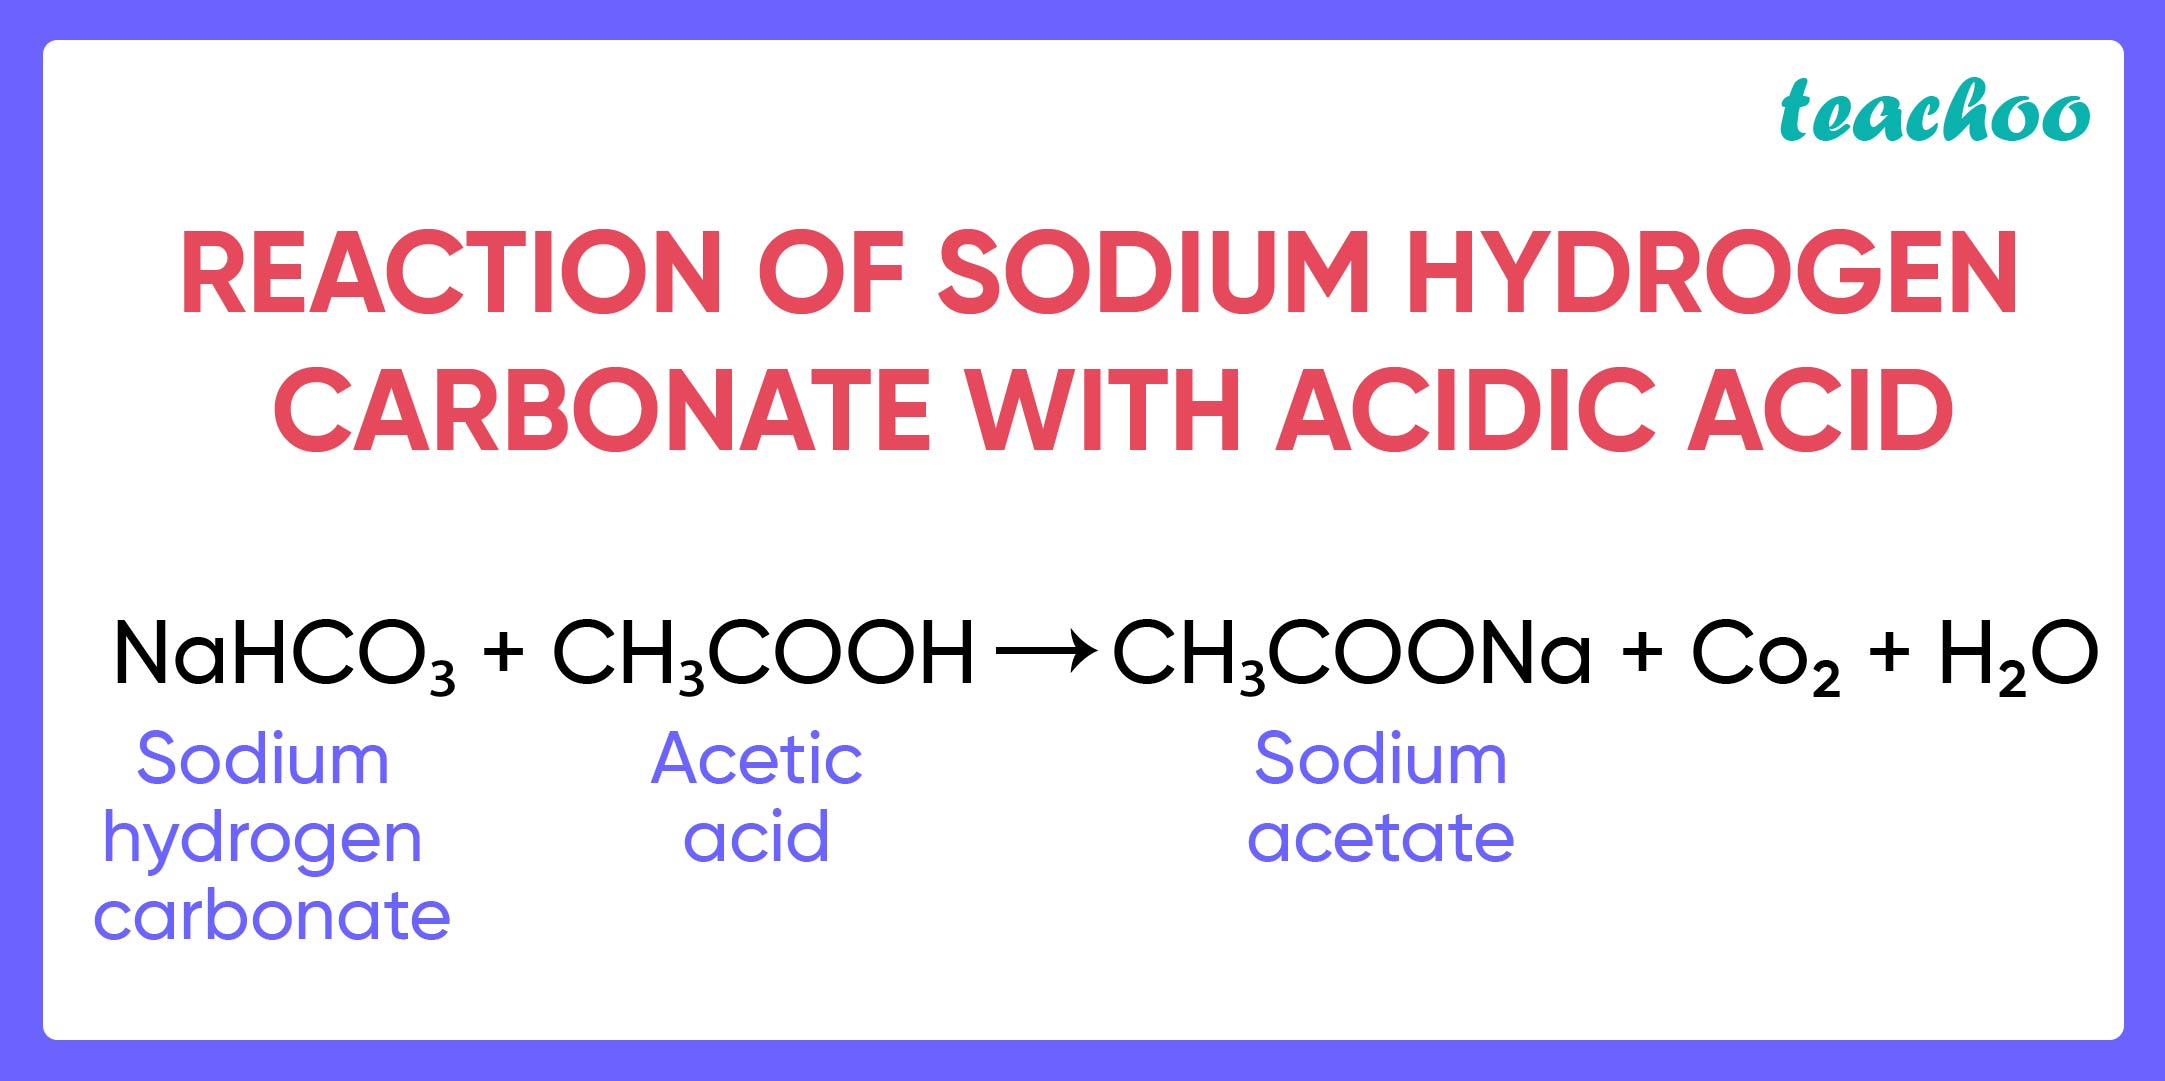 Reaction of Sodium hydrogen carbonate with acetic acid-01.jpg